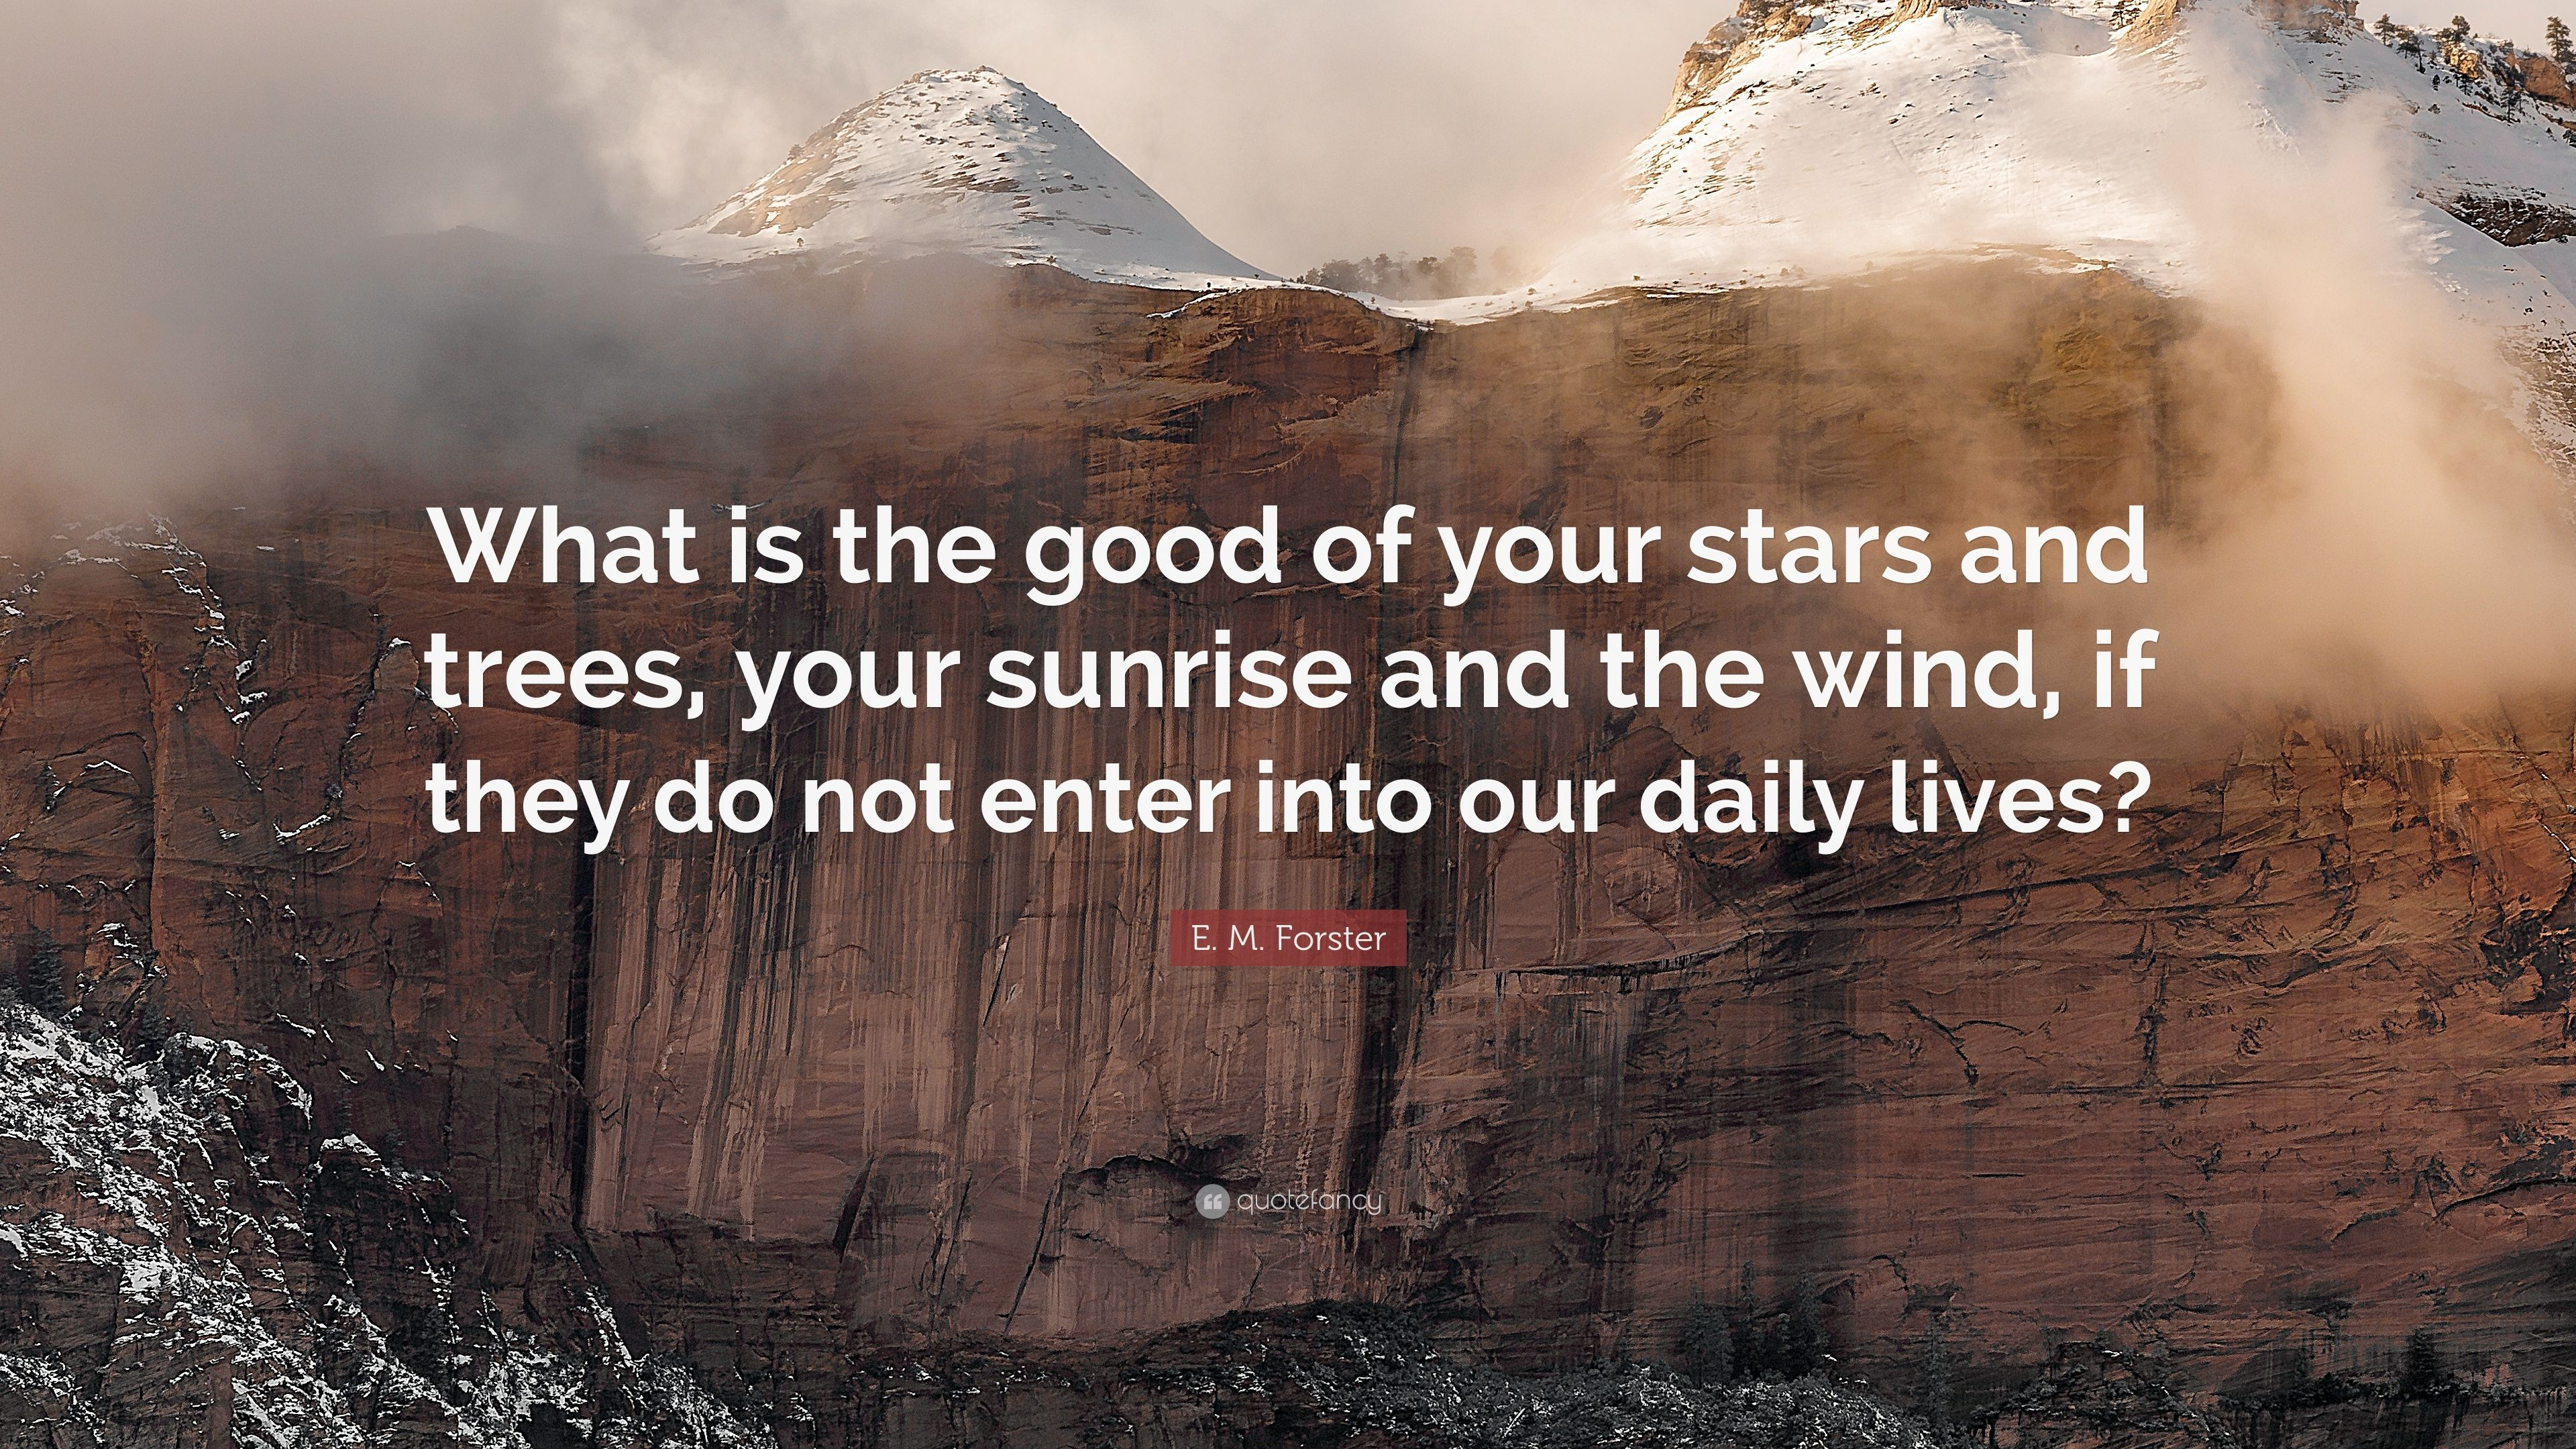 E M Forster Quote What Is The Good Of Your Stars And Trees Your